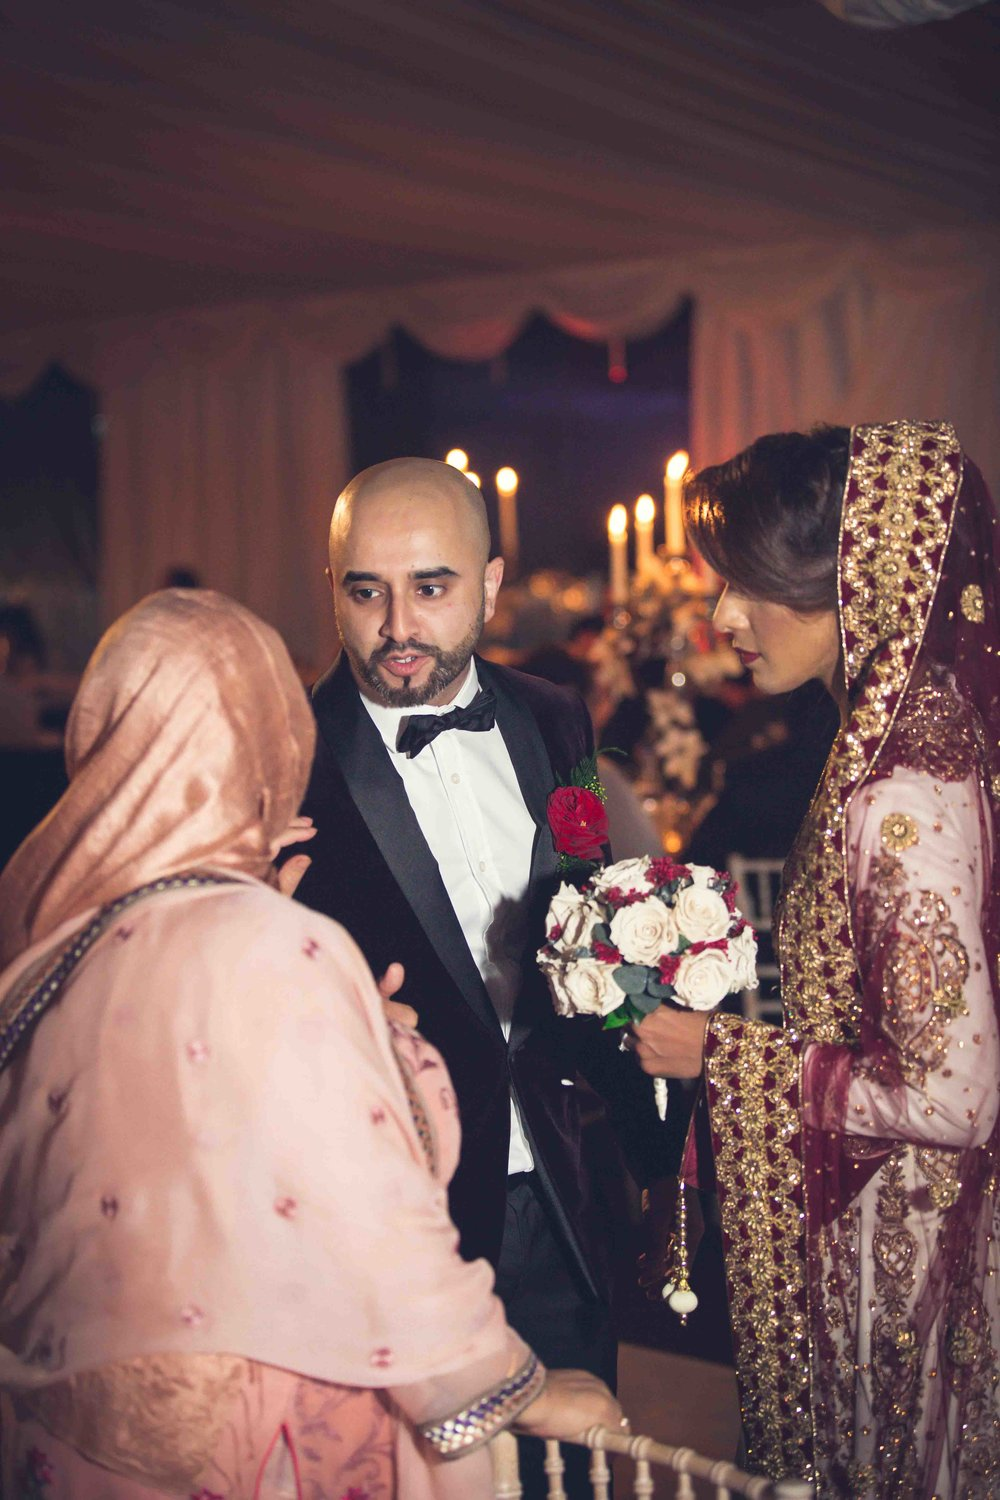 Asian Wedding Photographer Opu Sultan Photography Lyme Park Scotland Edinburgh Glasgow London Manchester Liverpool Birmingham Wedding Photos prewed shoot Azman & Saira Blog-140.jpg